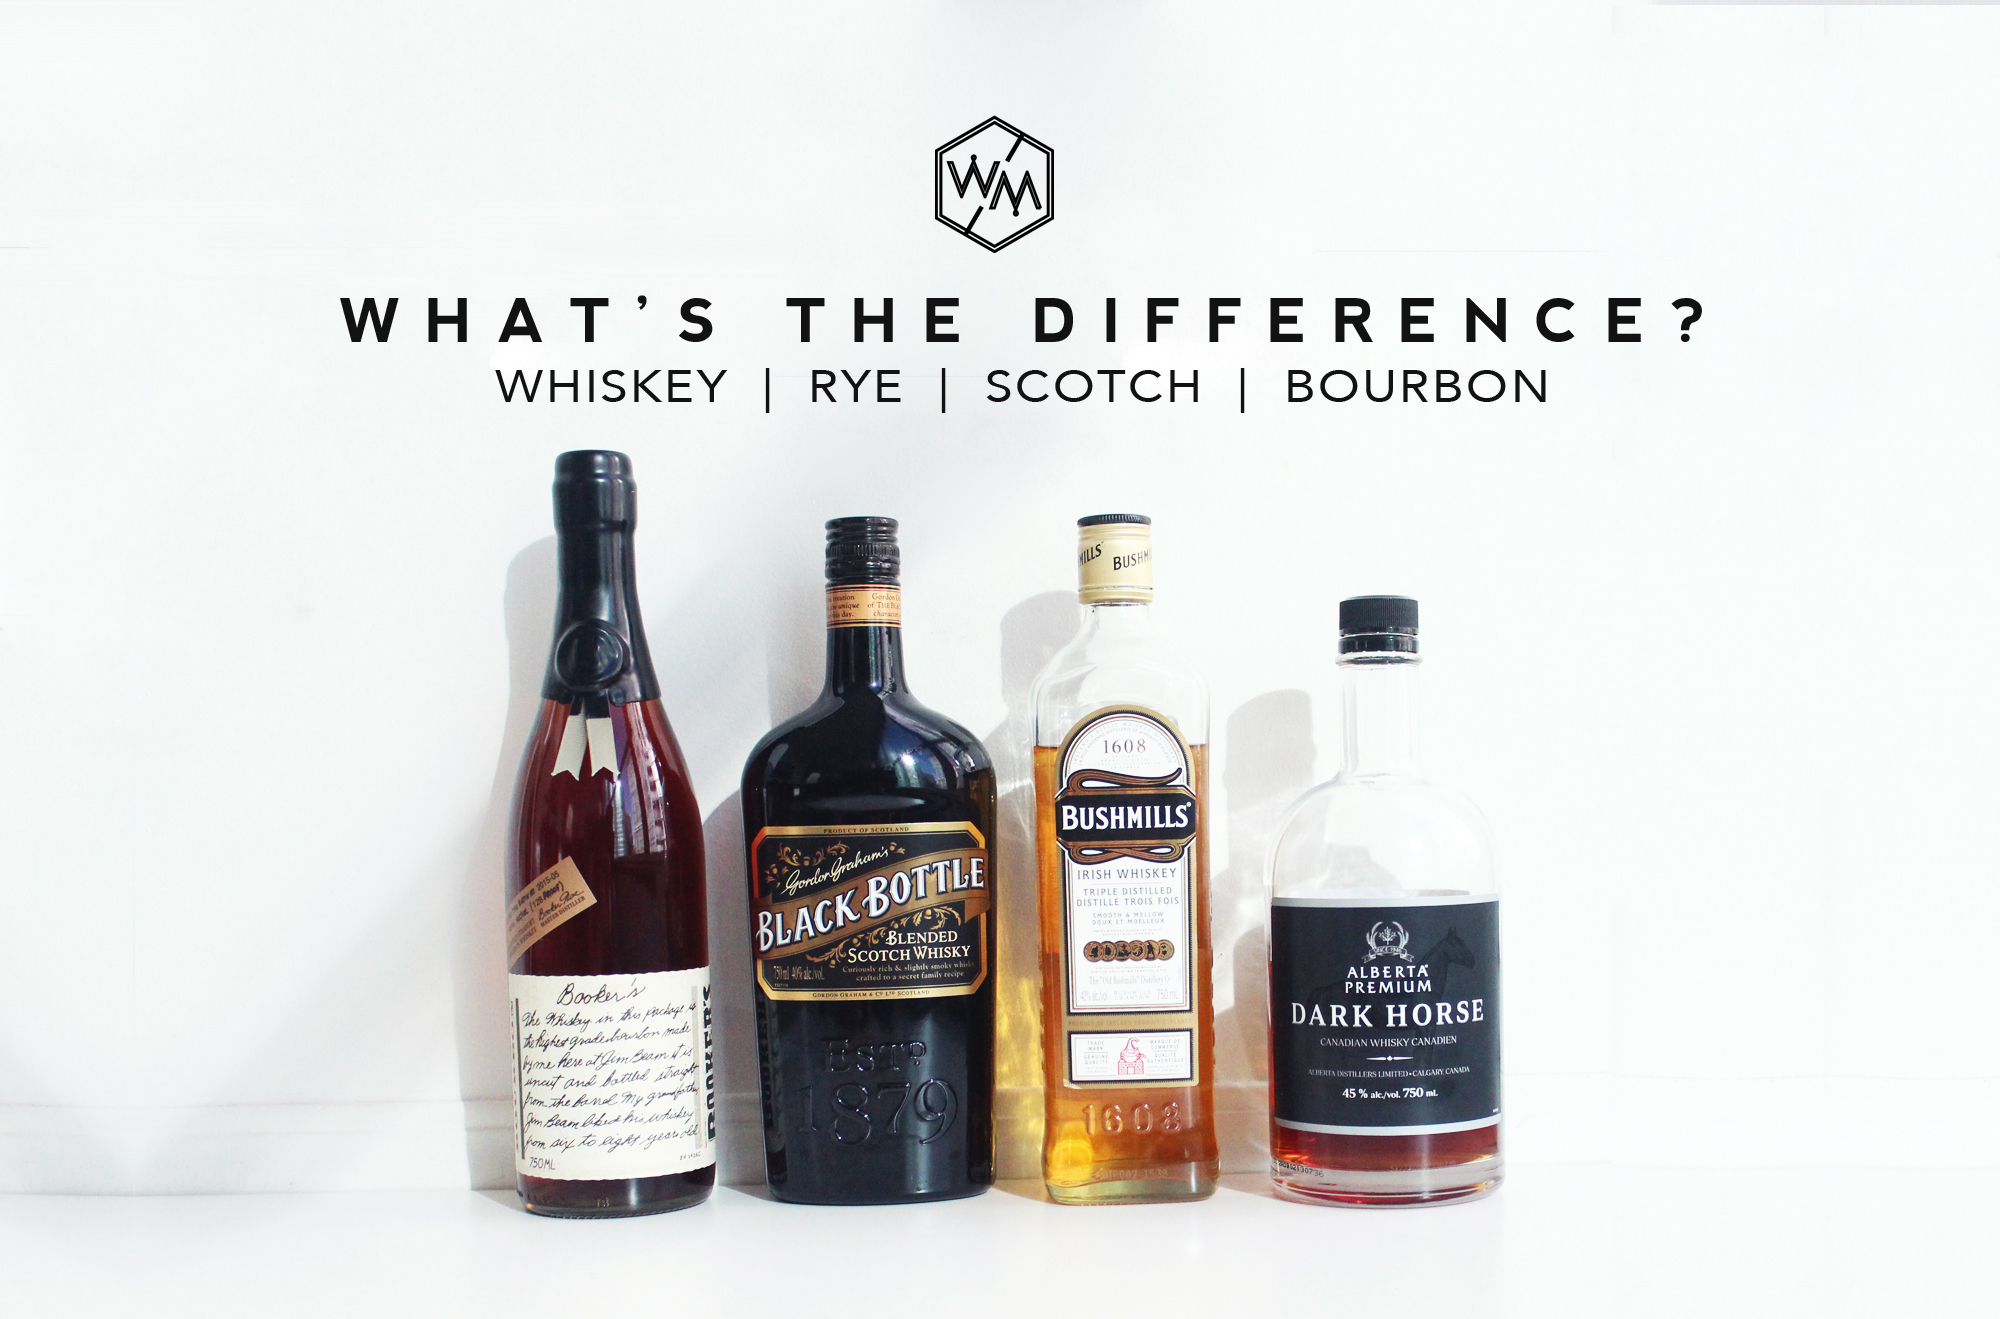 How to distinguish between whiskey